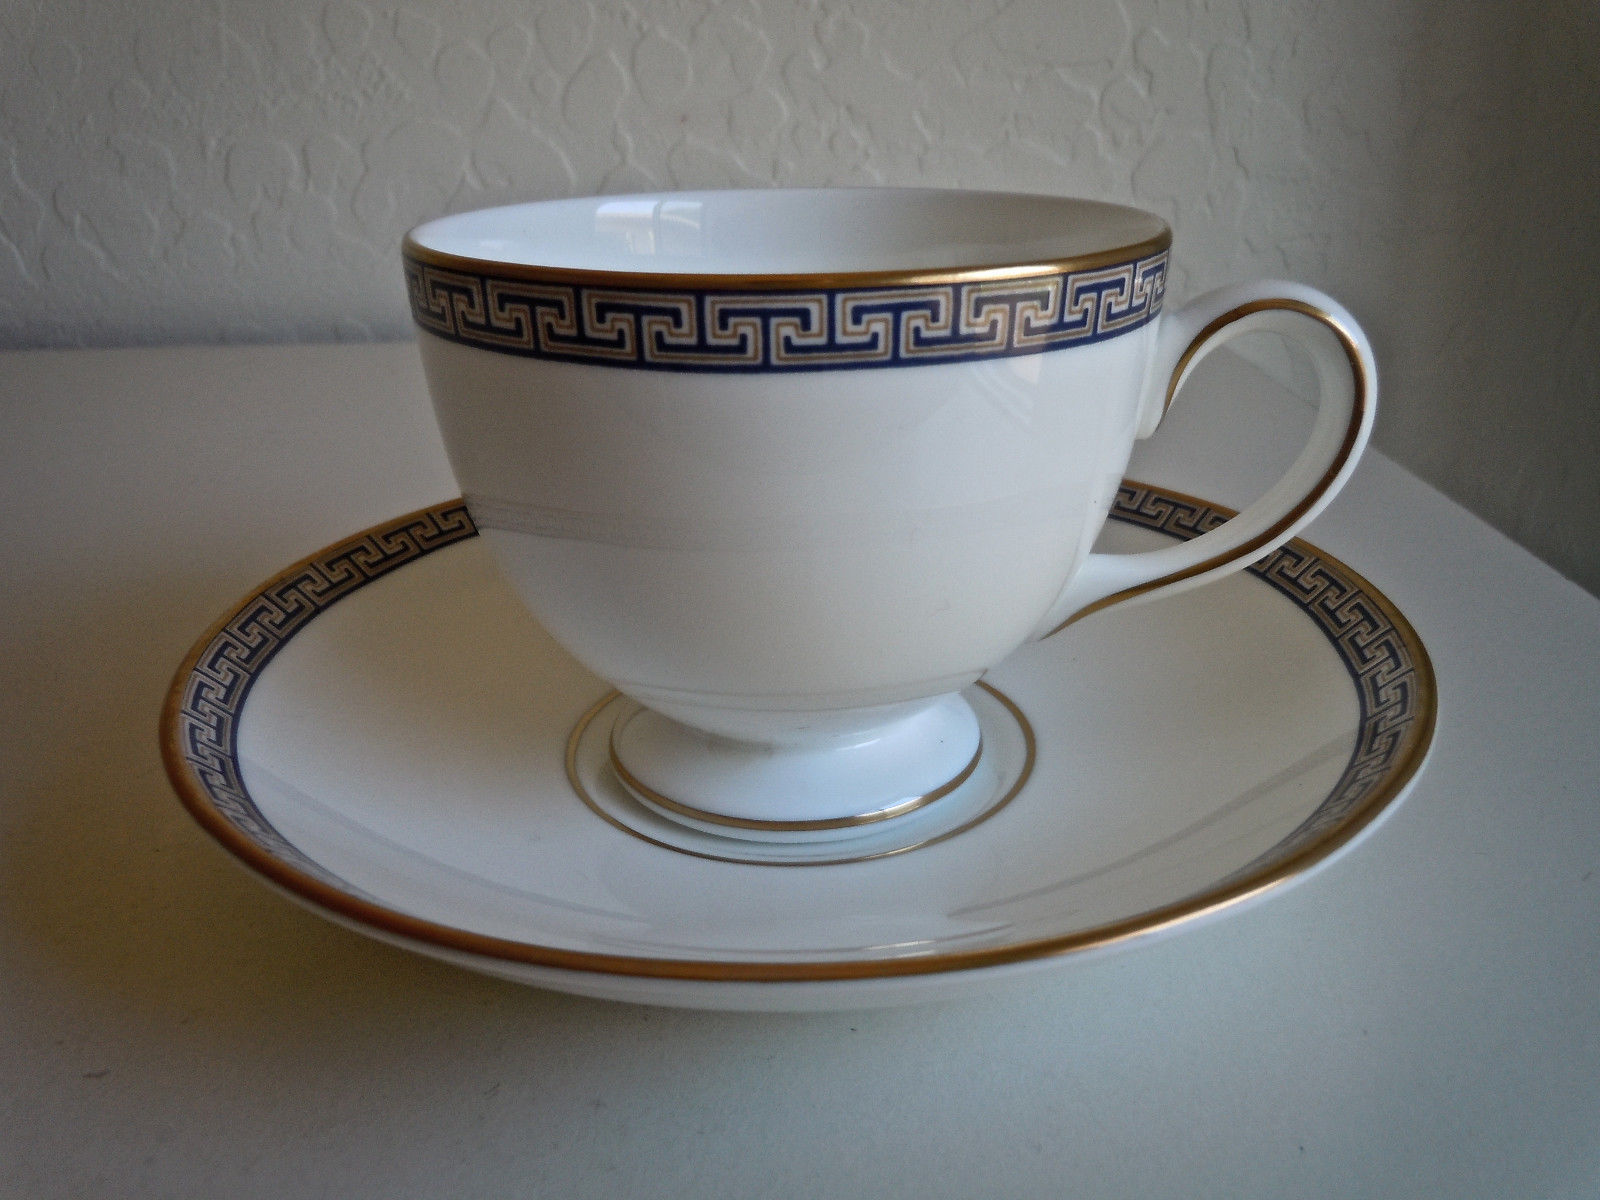 Wedgwood Palatia Footed Cup and Saucer